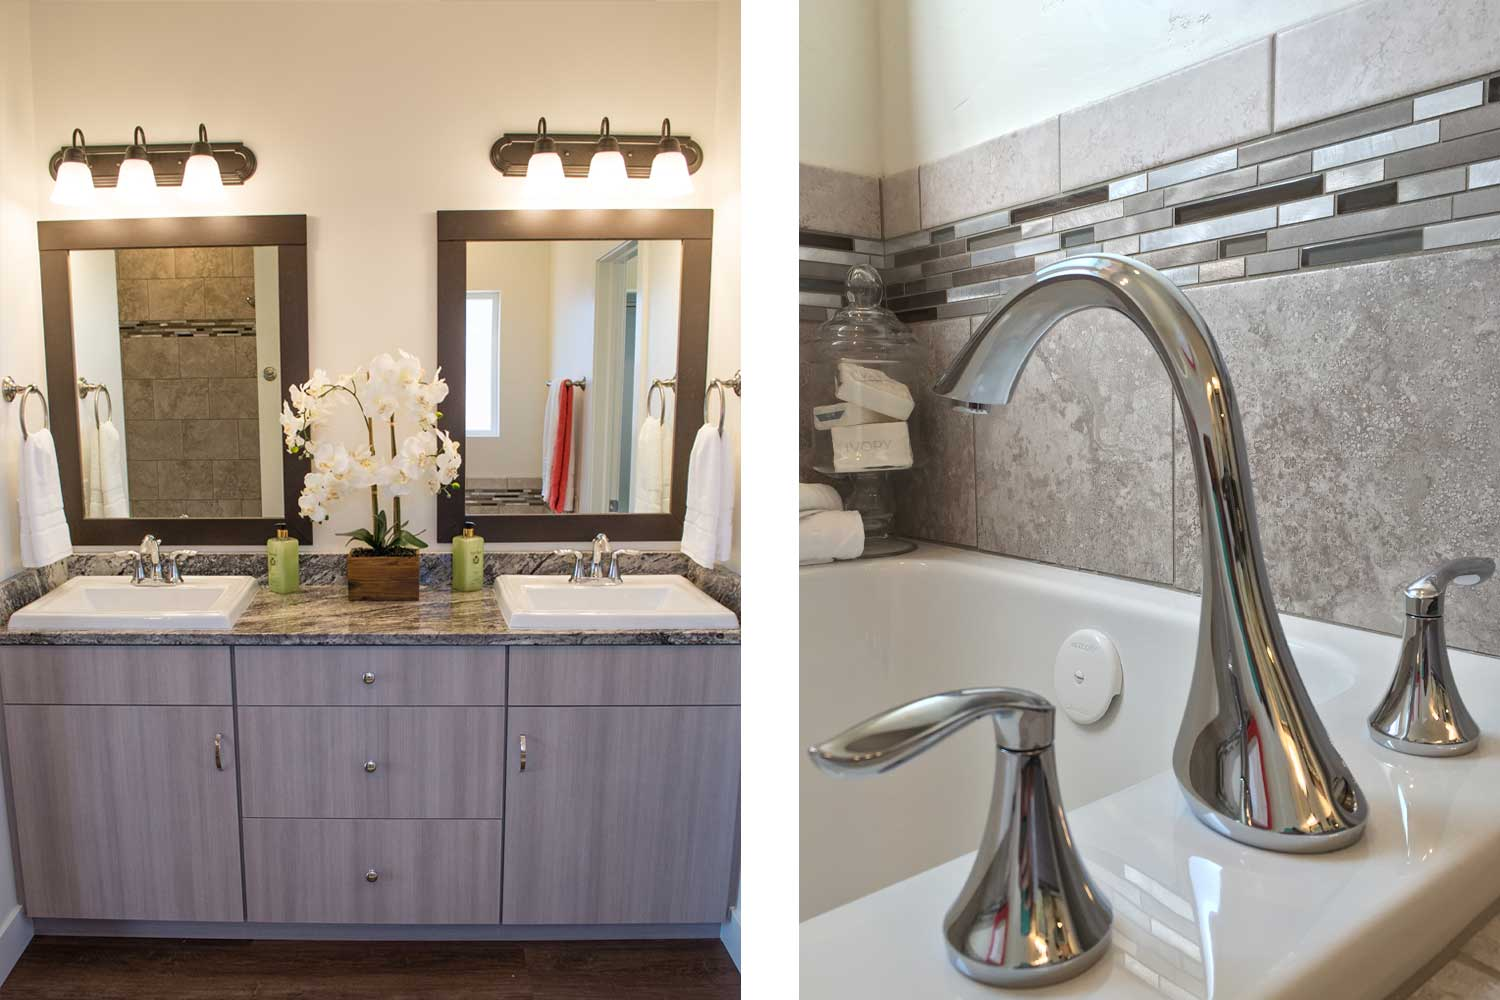 bathroom vanity with two sinks and mirrors and close up of silver colored faucets for the bathtub